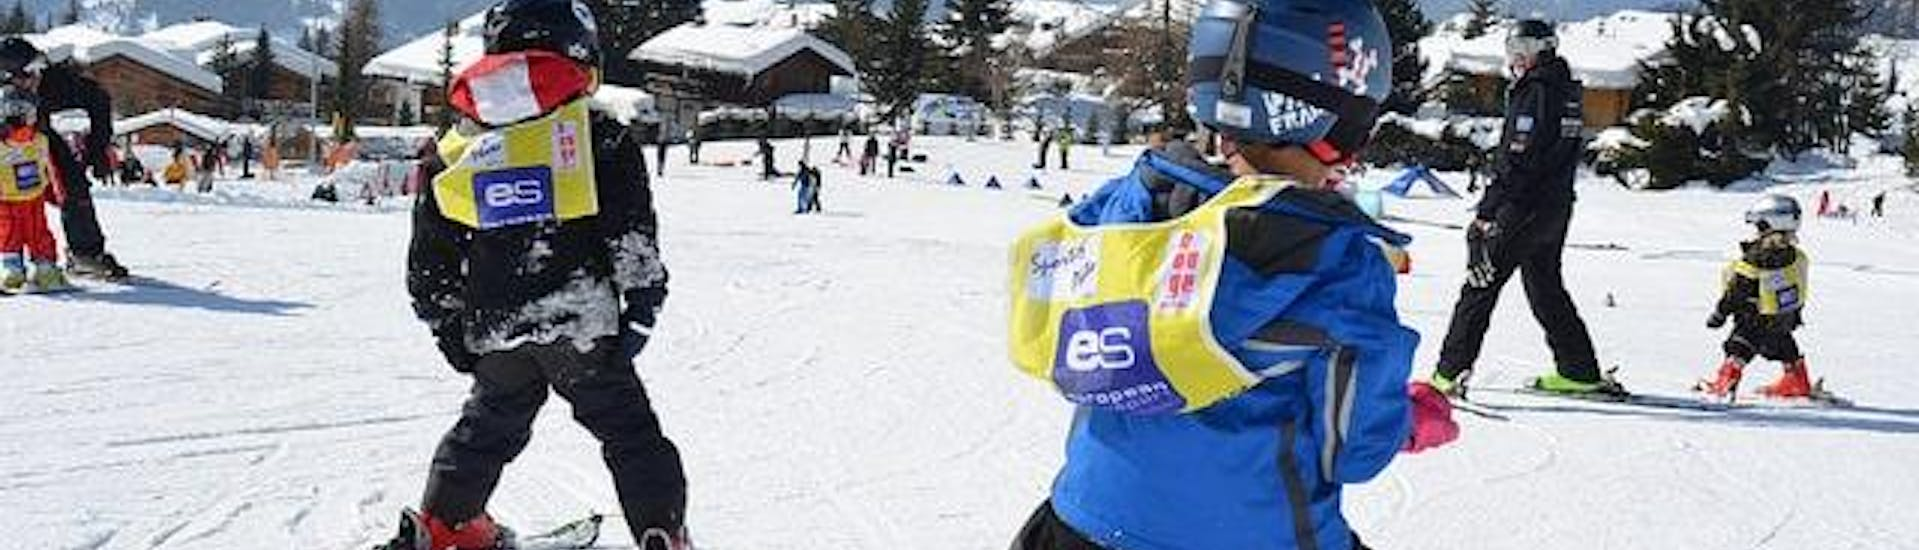 Kids Ski Lessons (6-12 y.) for Advanced Skiers - Morning